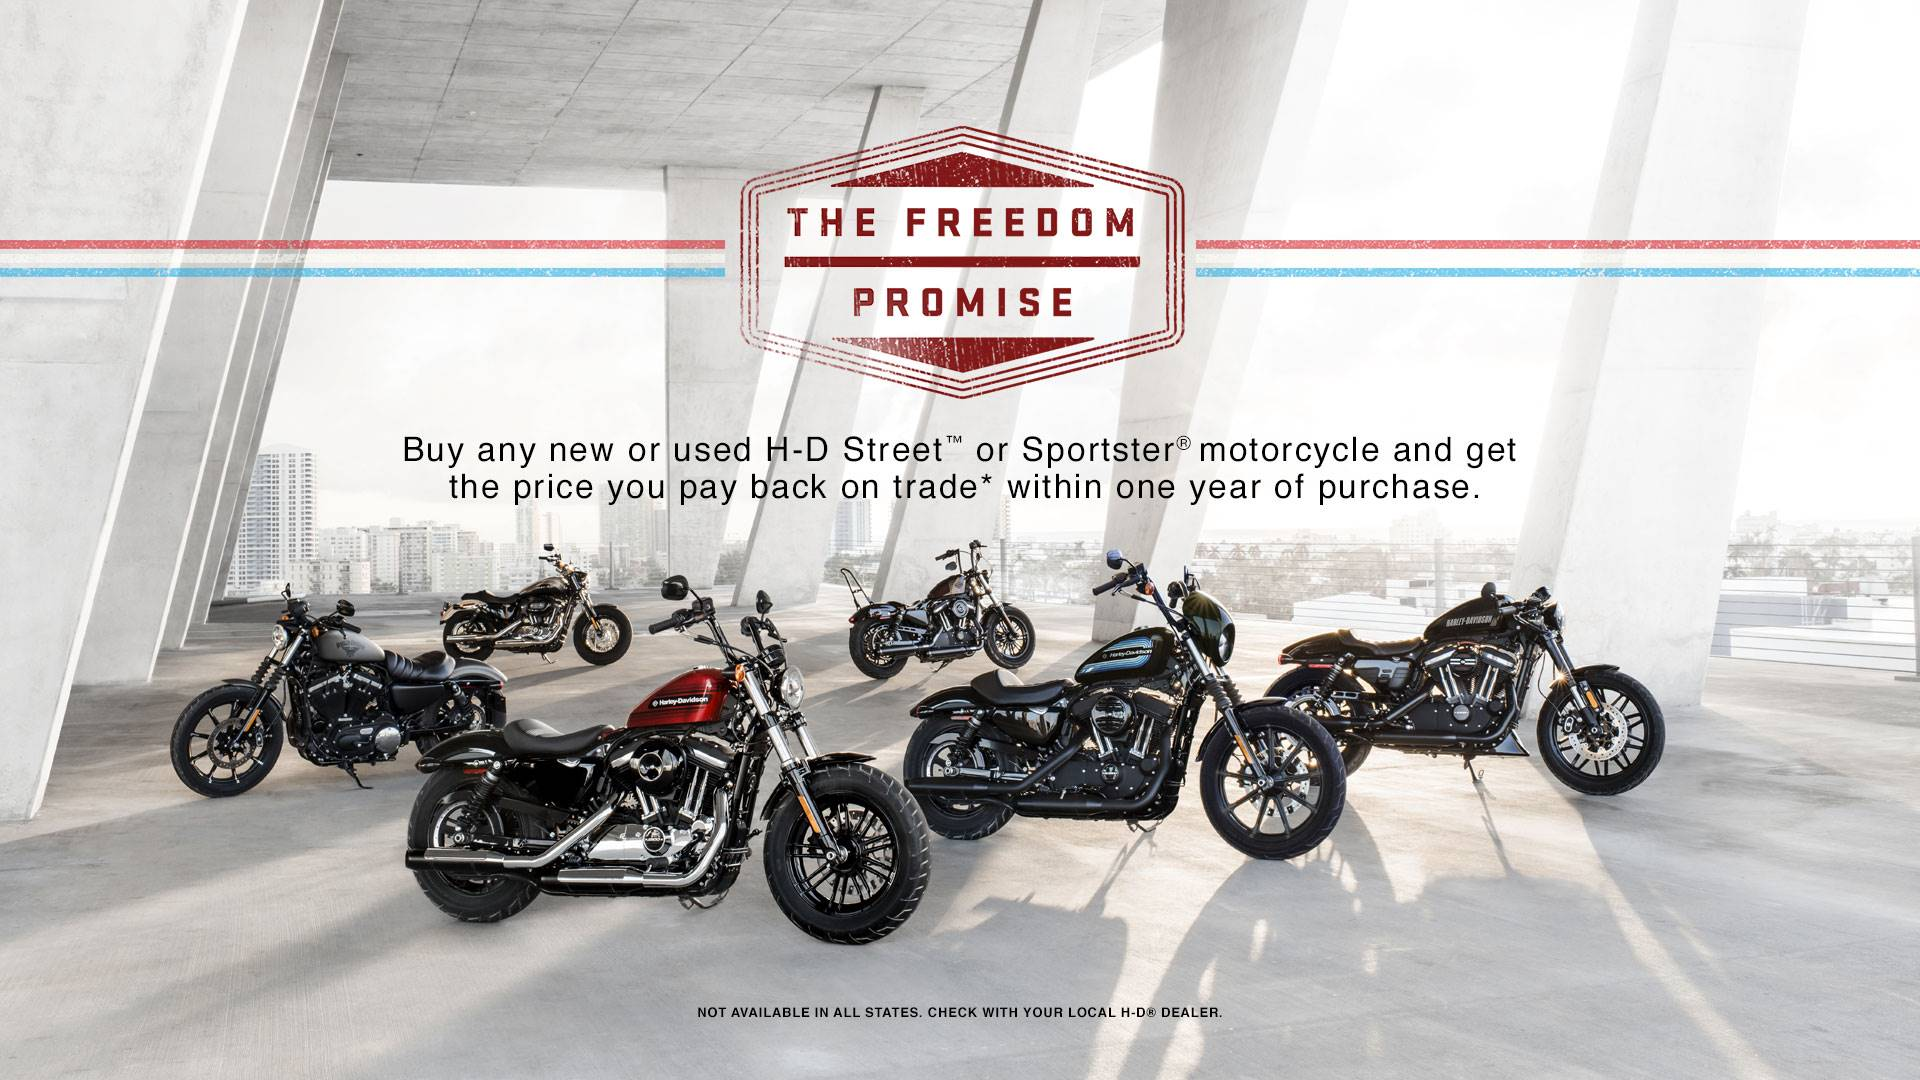 Harley-Davidson FREEDOM PROMISE PROGRAM